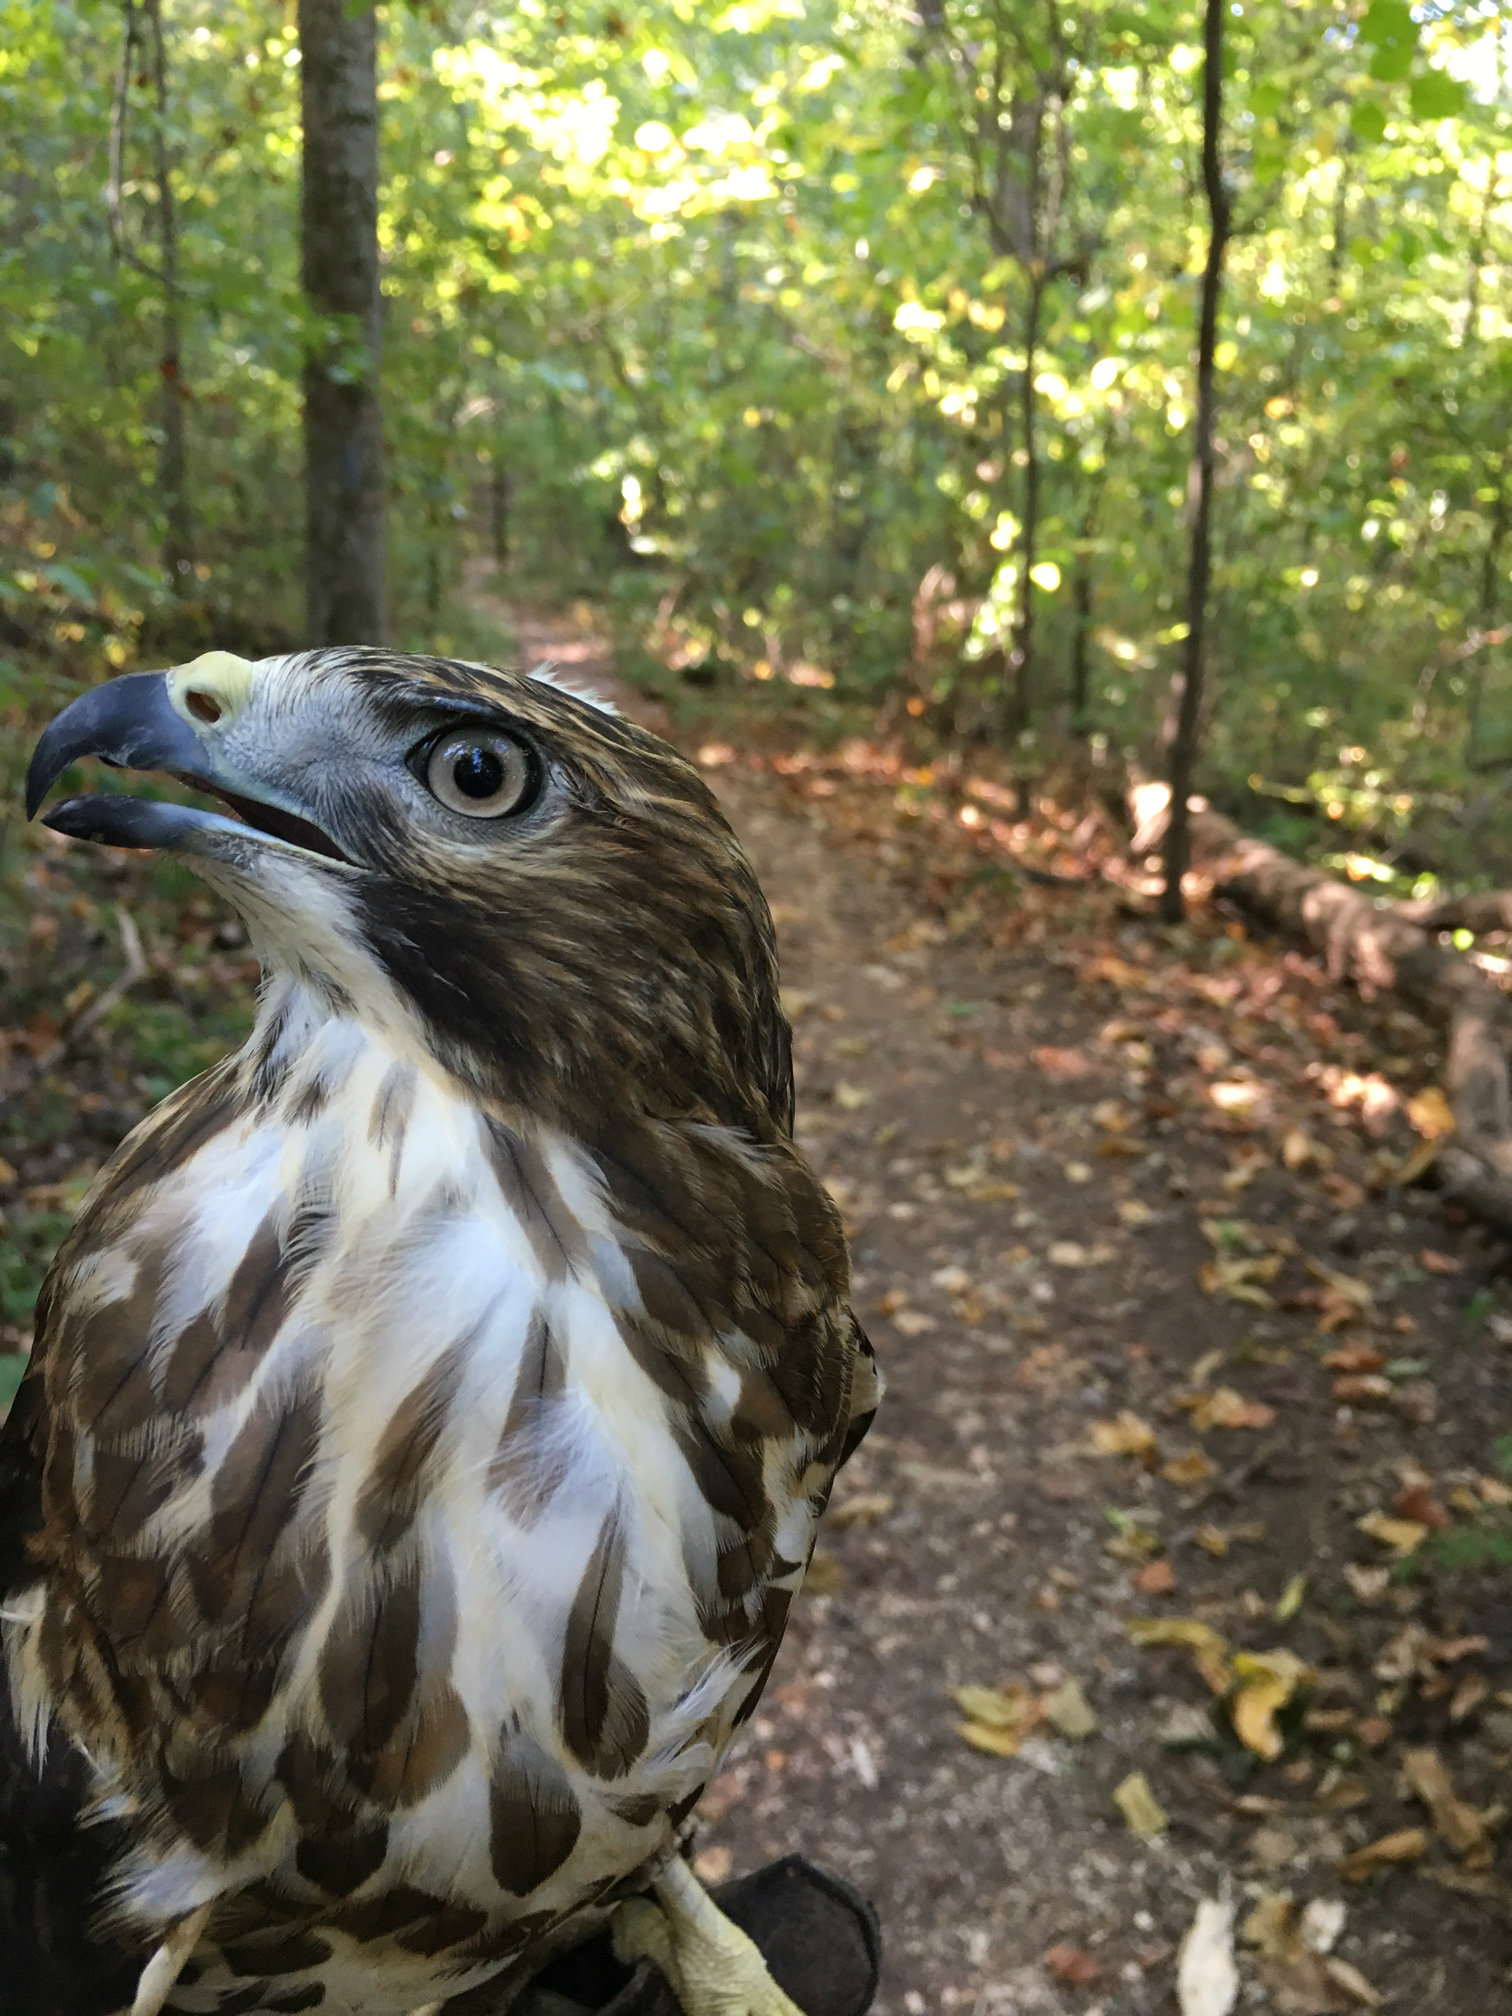 Here's our broad-winged hawk, Tawodi, on her morning walk. She complained the whole time.